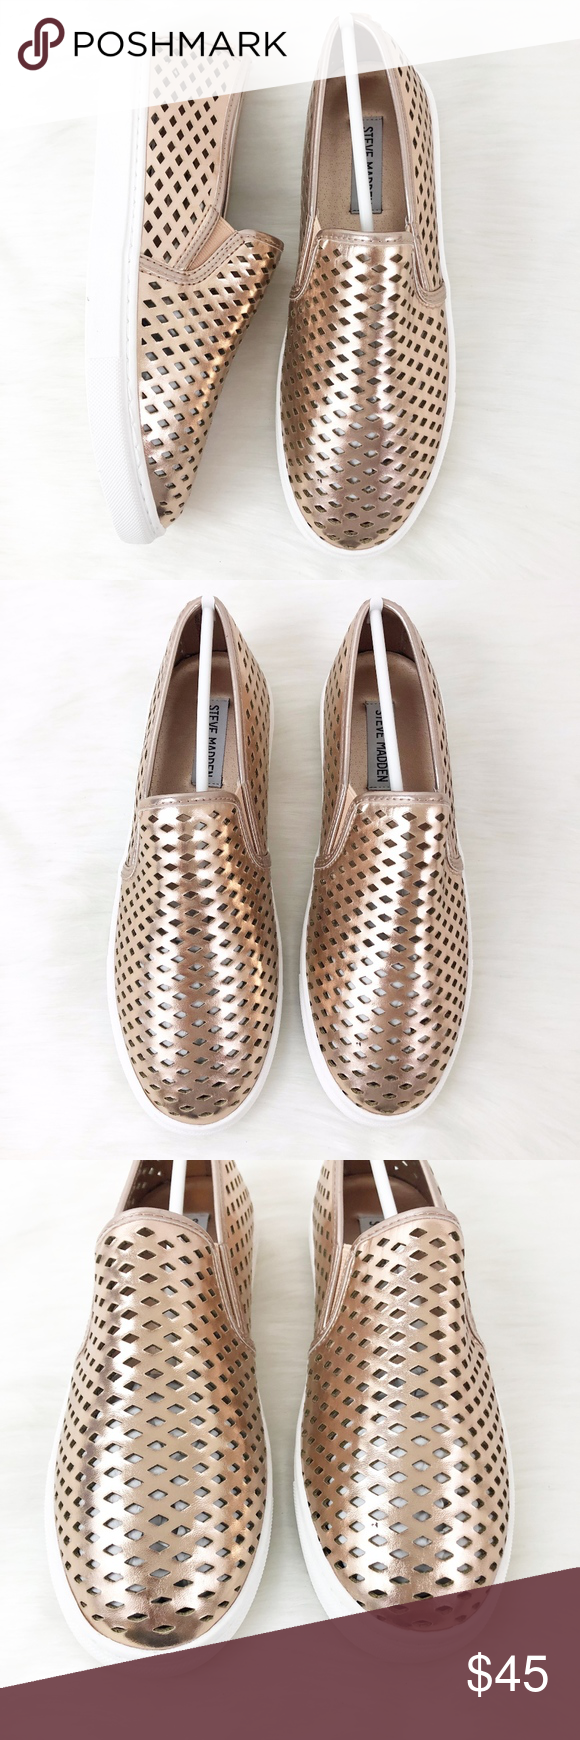 d0bfbe72266 Steve Madden Rose Gold Zeena Slip-On Sneaker New in box. Round toe. Dual  side goring. Perforated upper. Slip-on. Note  These run on the smaller side.